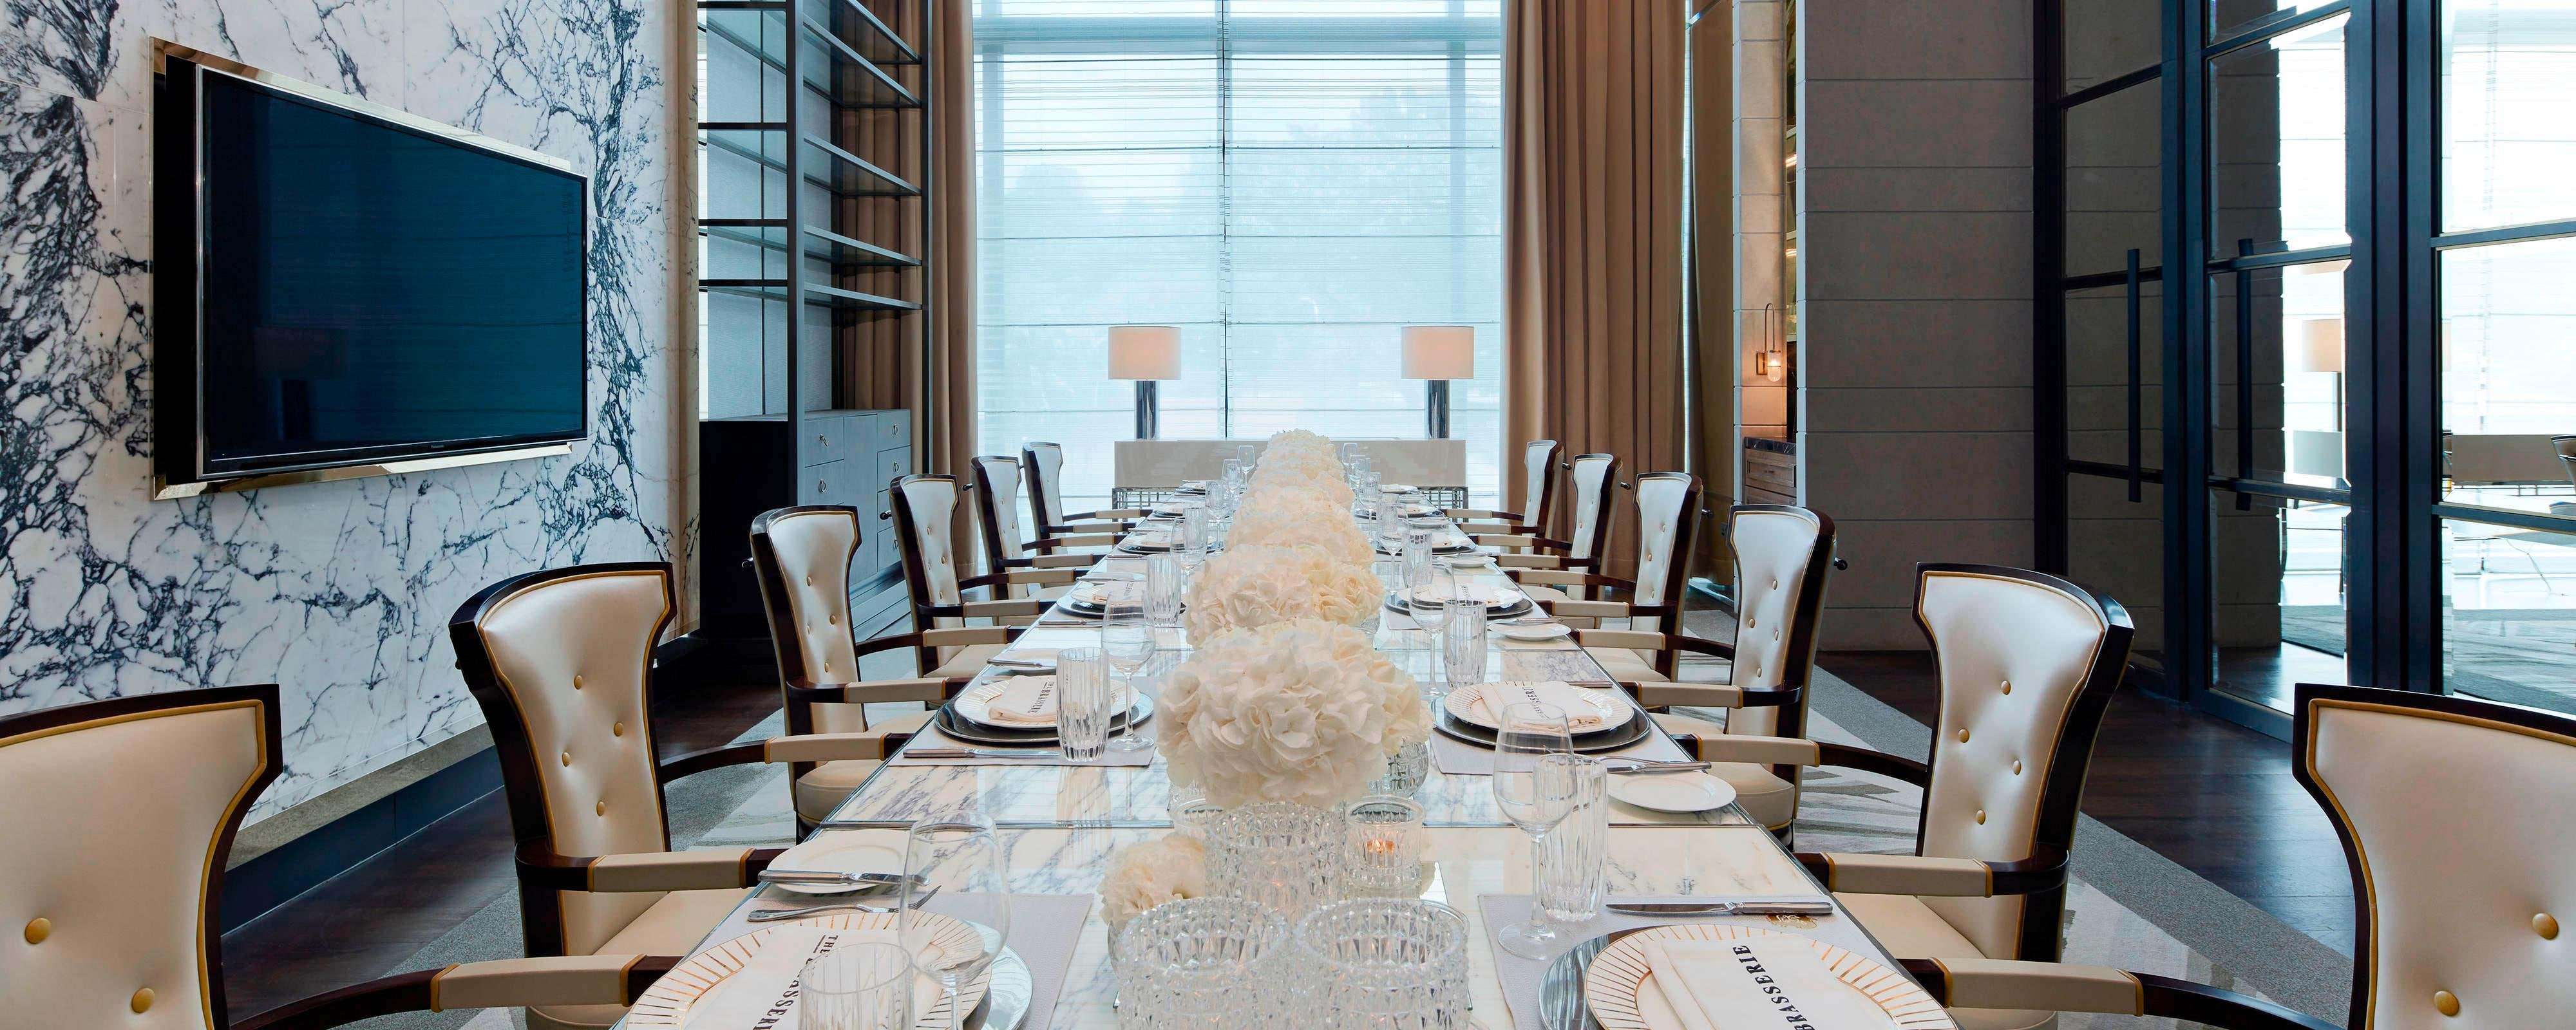 The Brasserie Private Dining Room